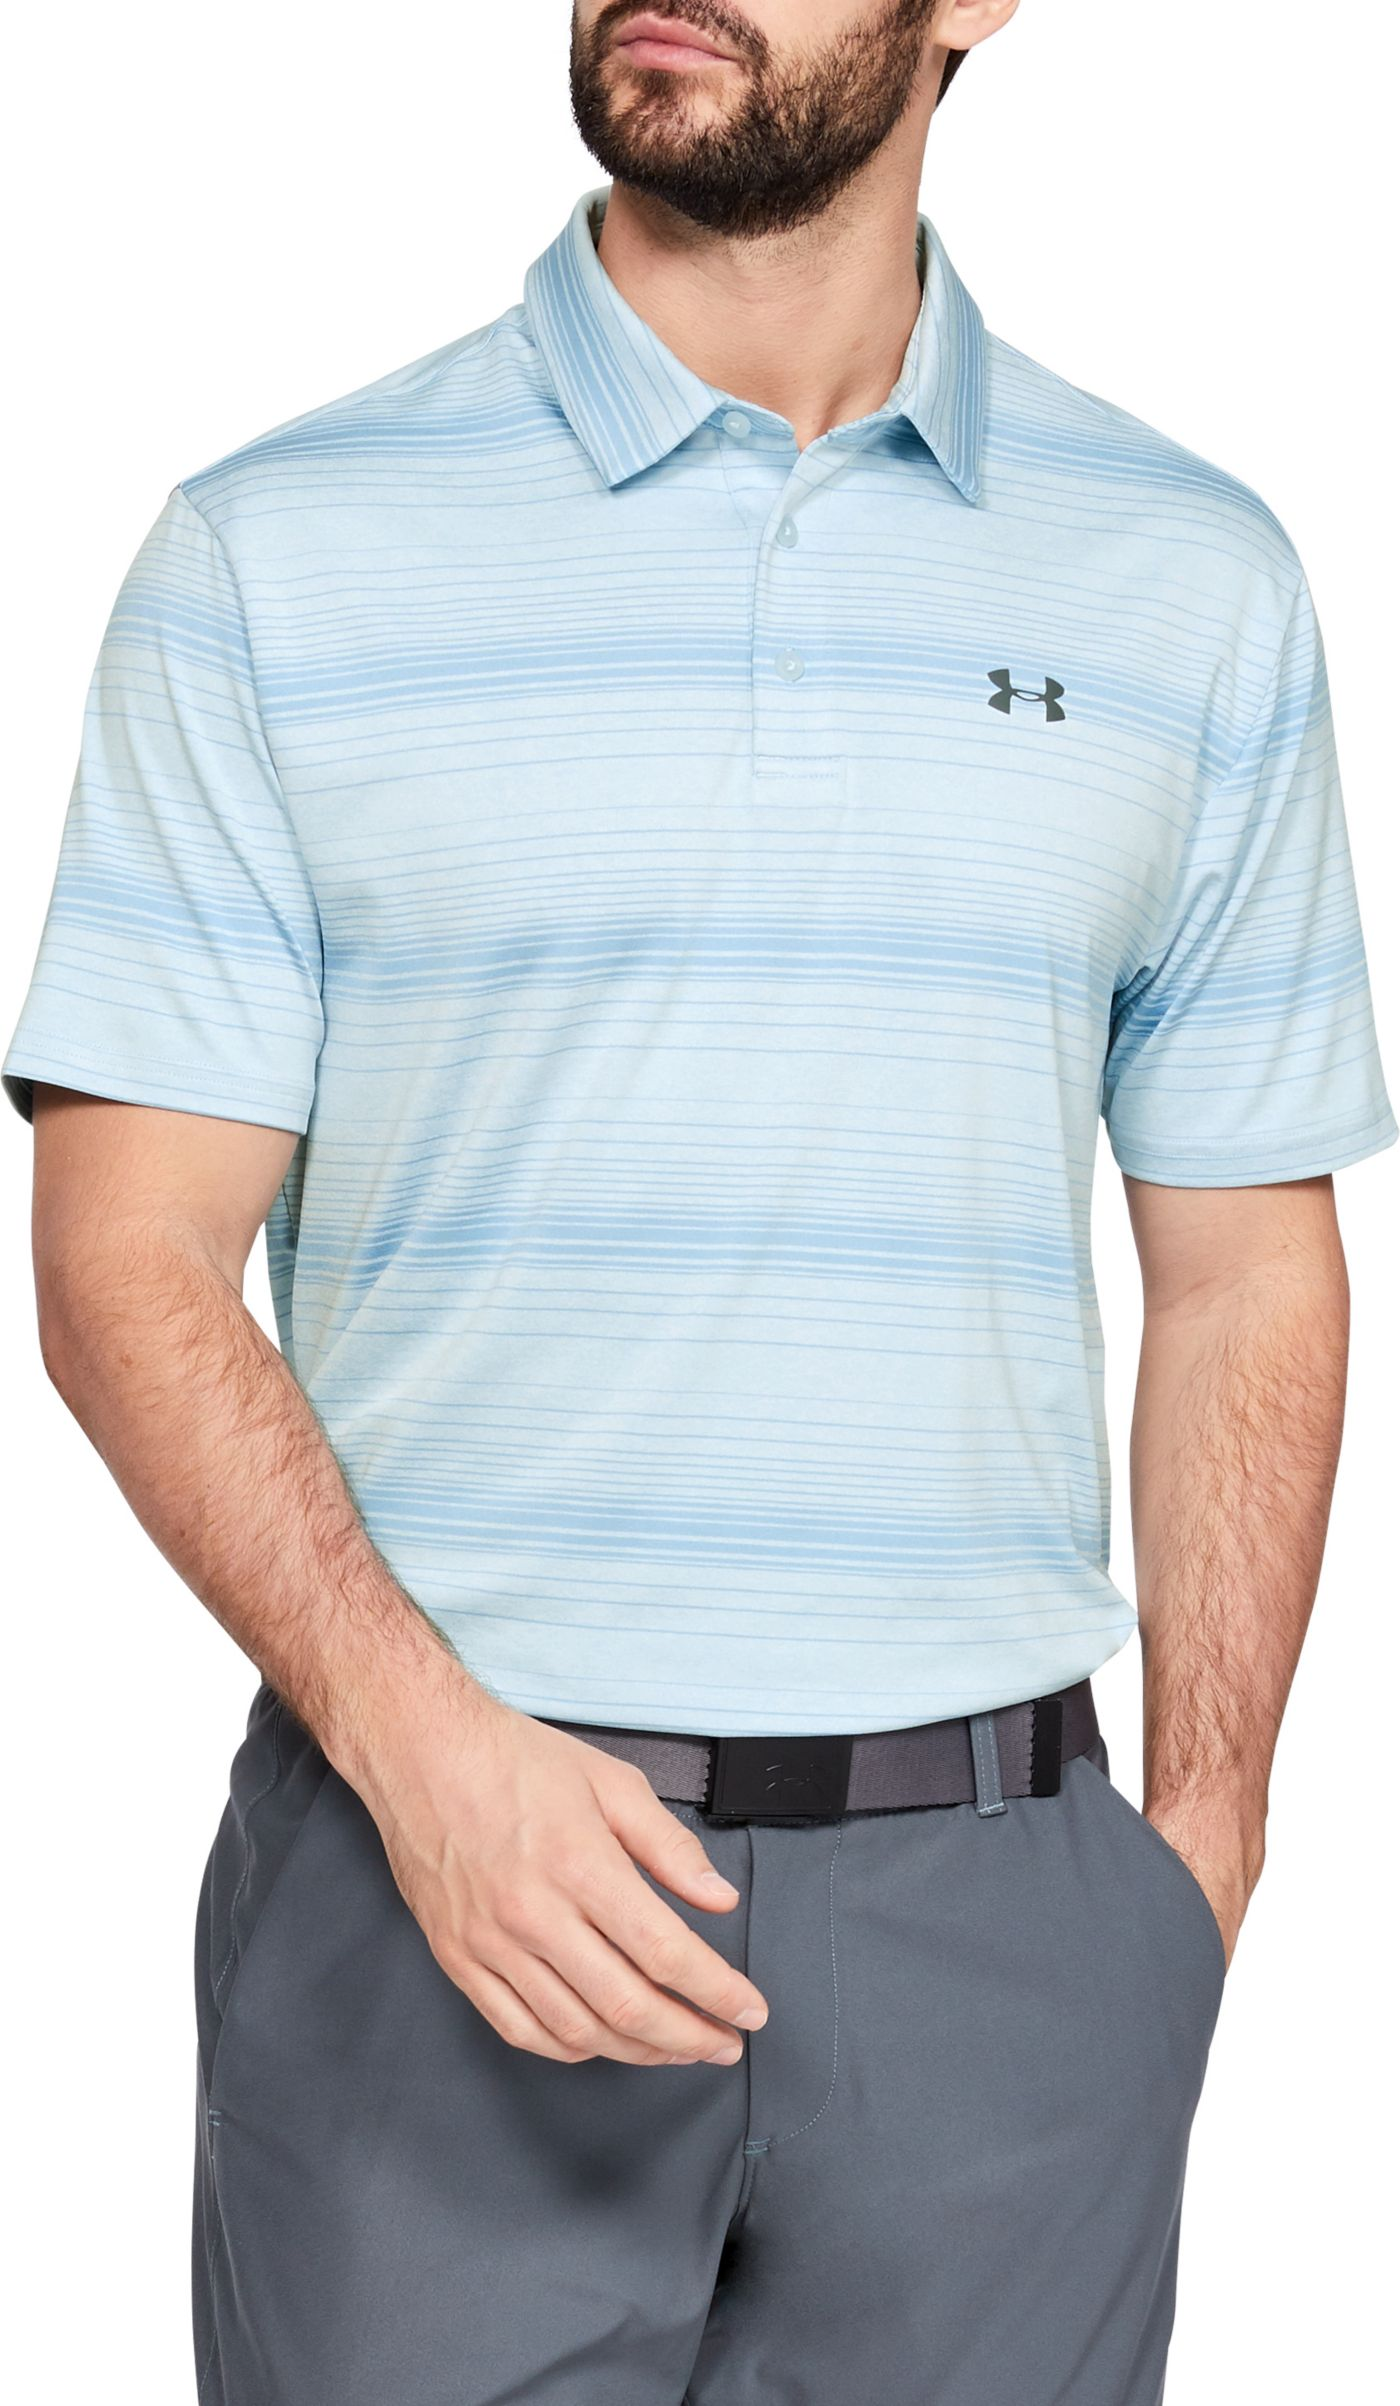 Under Armour Men's Playoff 2.0 Launch Stripe Golf Polo